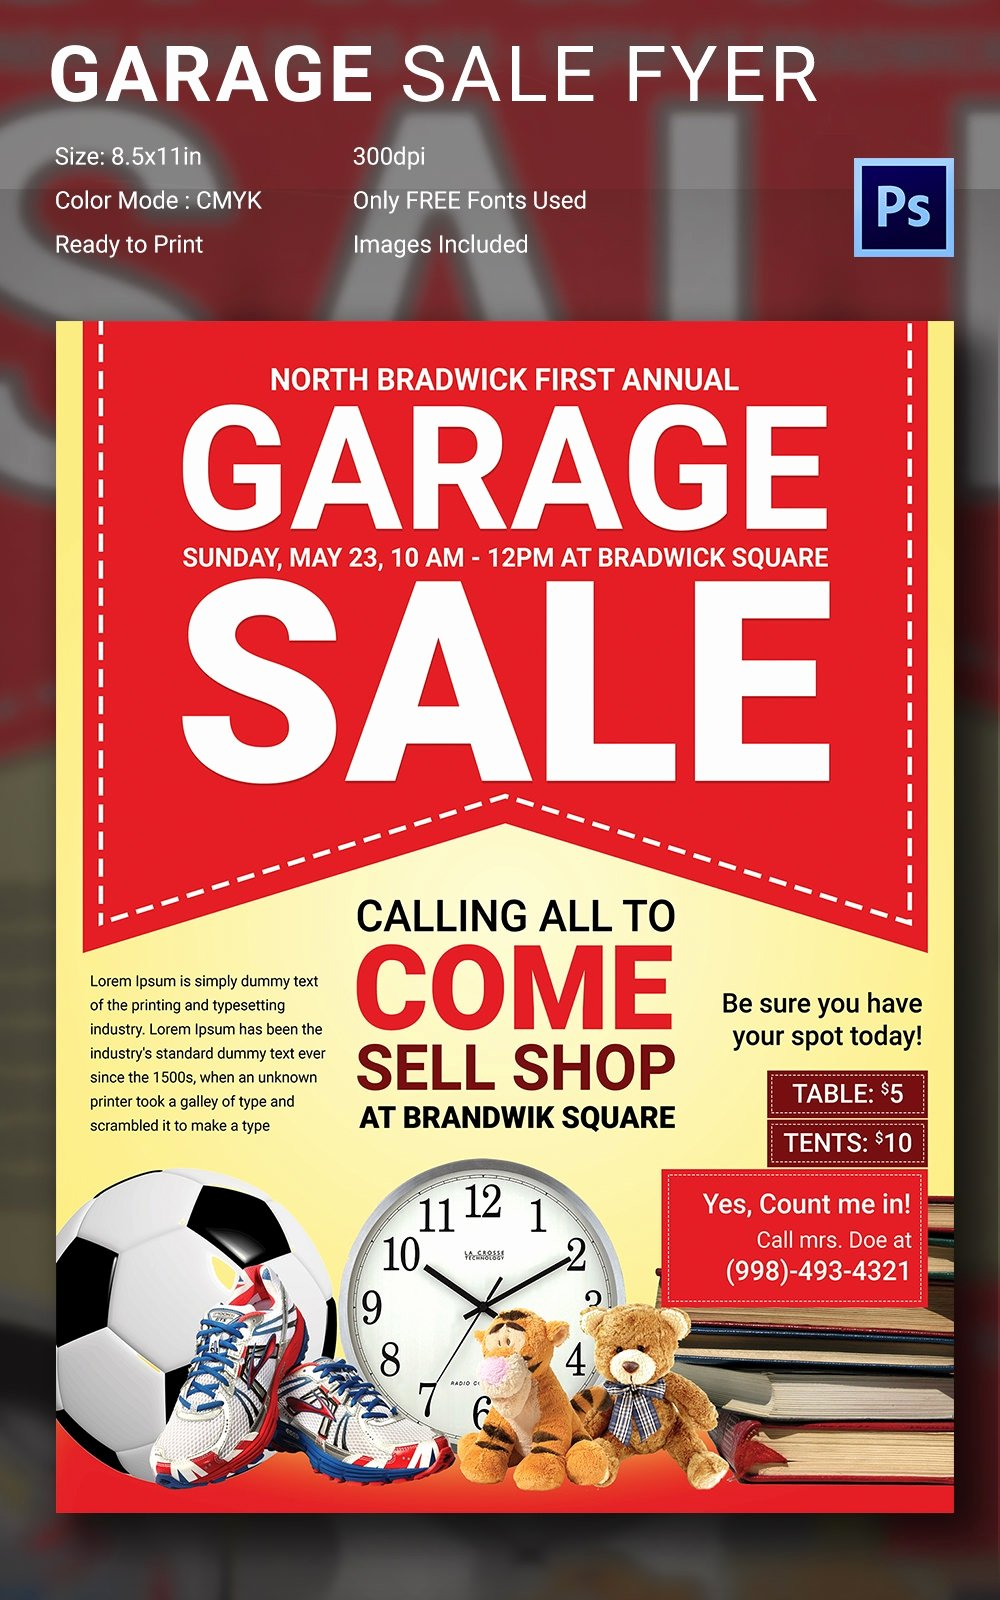 Garage Sale Flyer Template Inspirational 14 Best Yard Sale Flyer Templates & Psd Designs